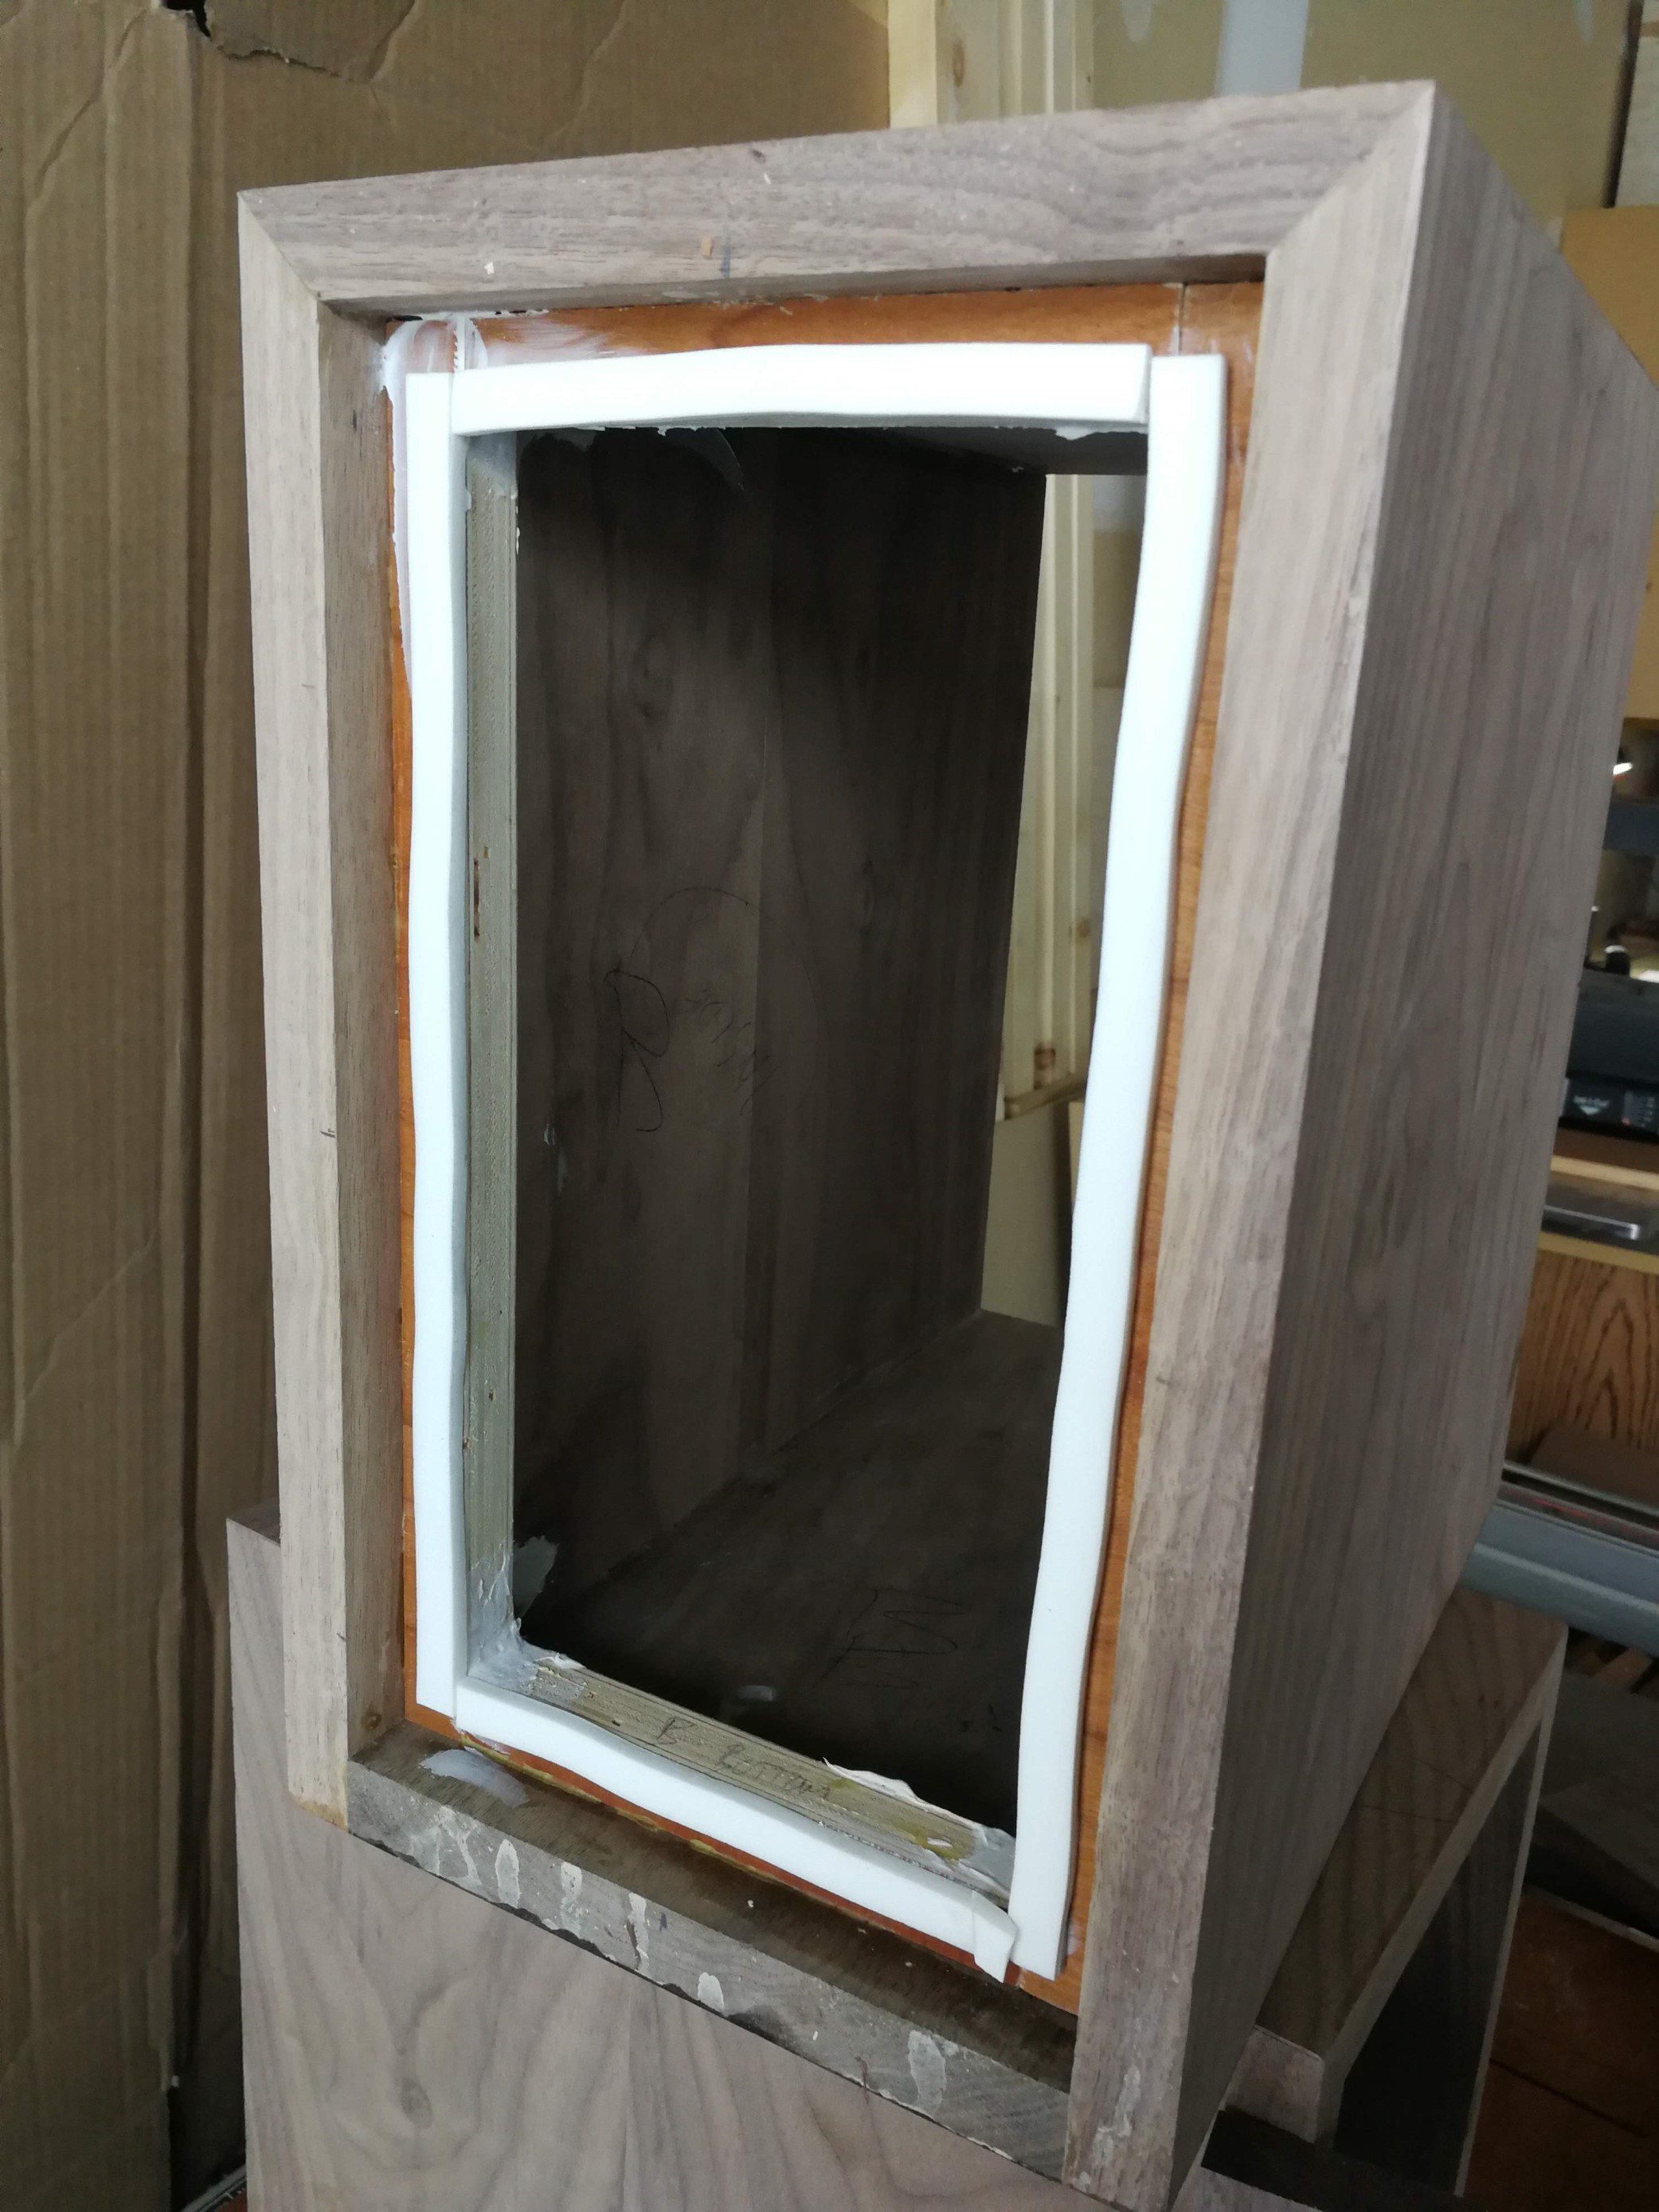 Rear of the cabinet with gasket installed